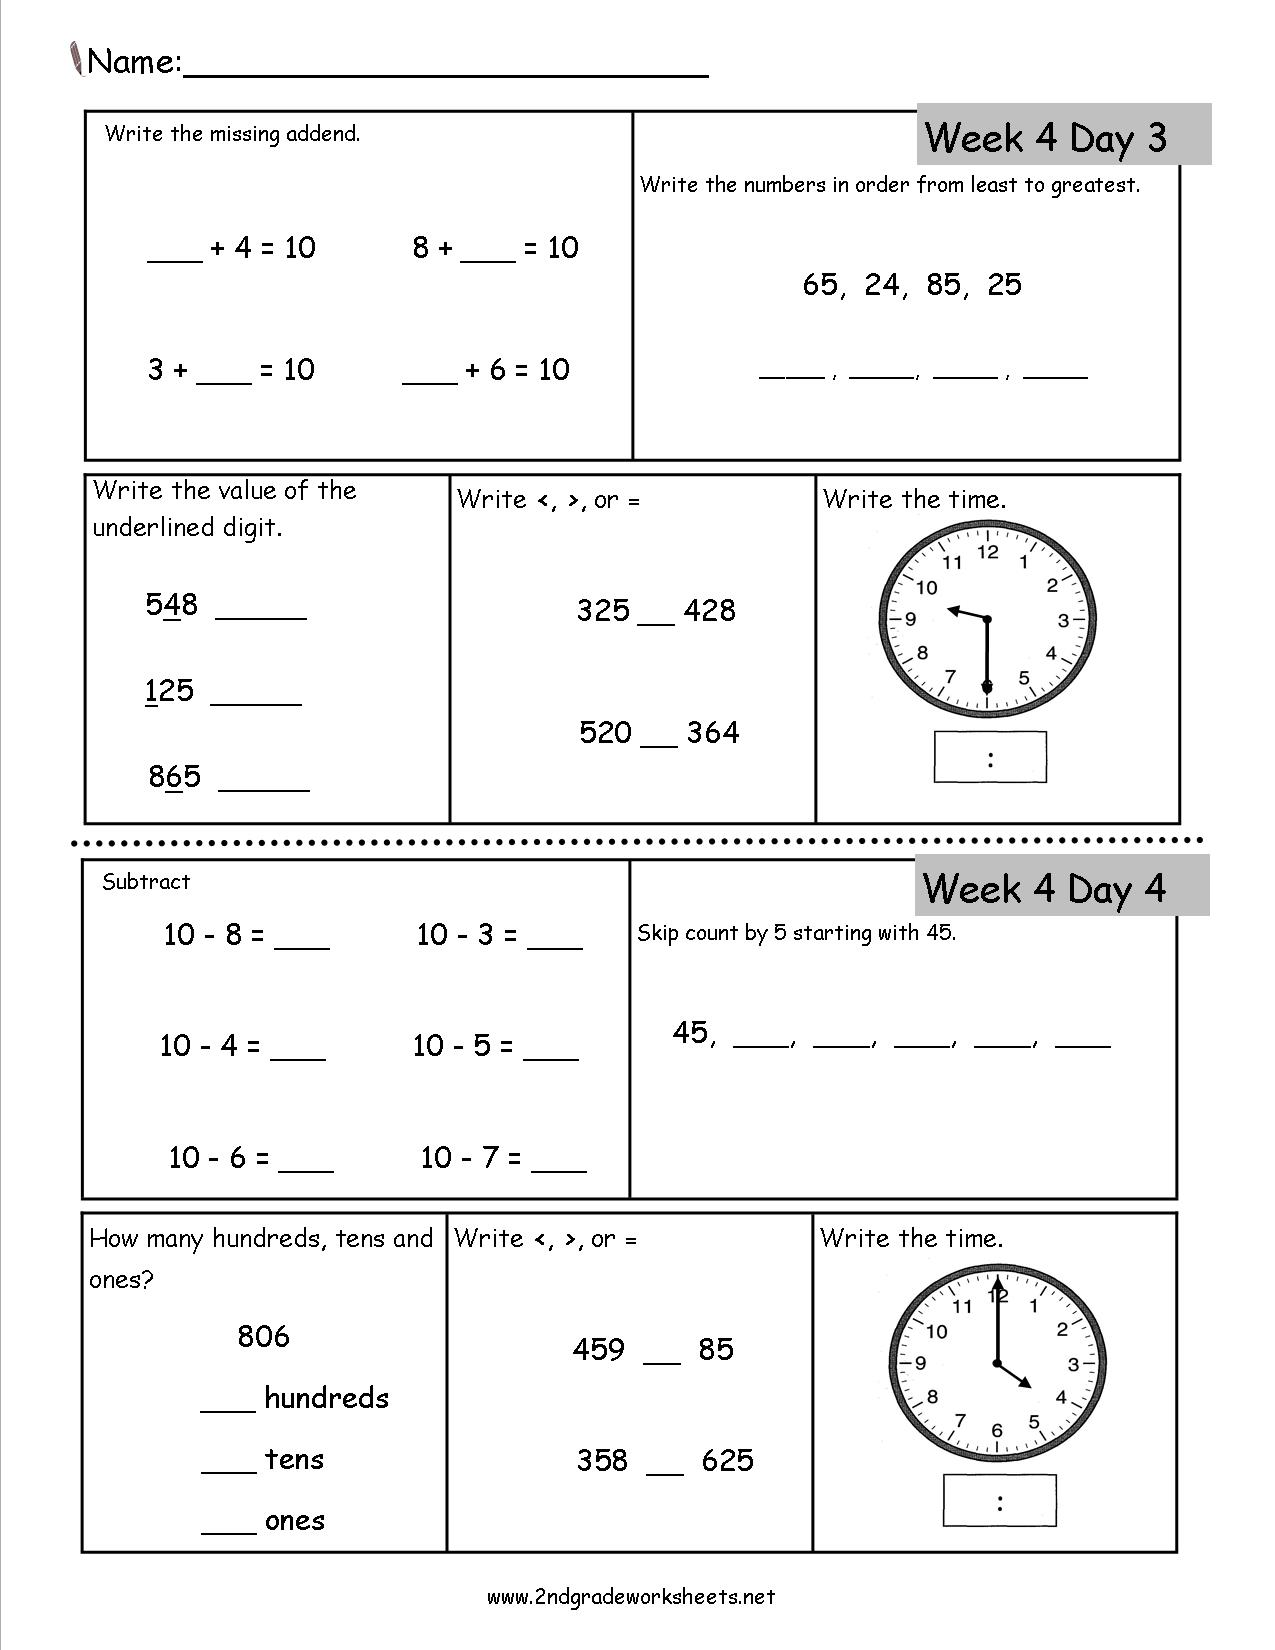 Homework Second Grade 2nd Grade Homework Workbooks For